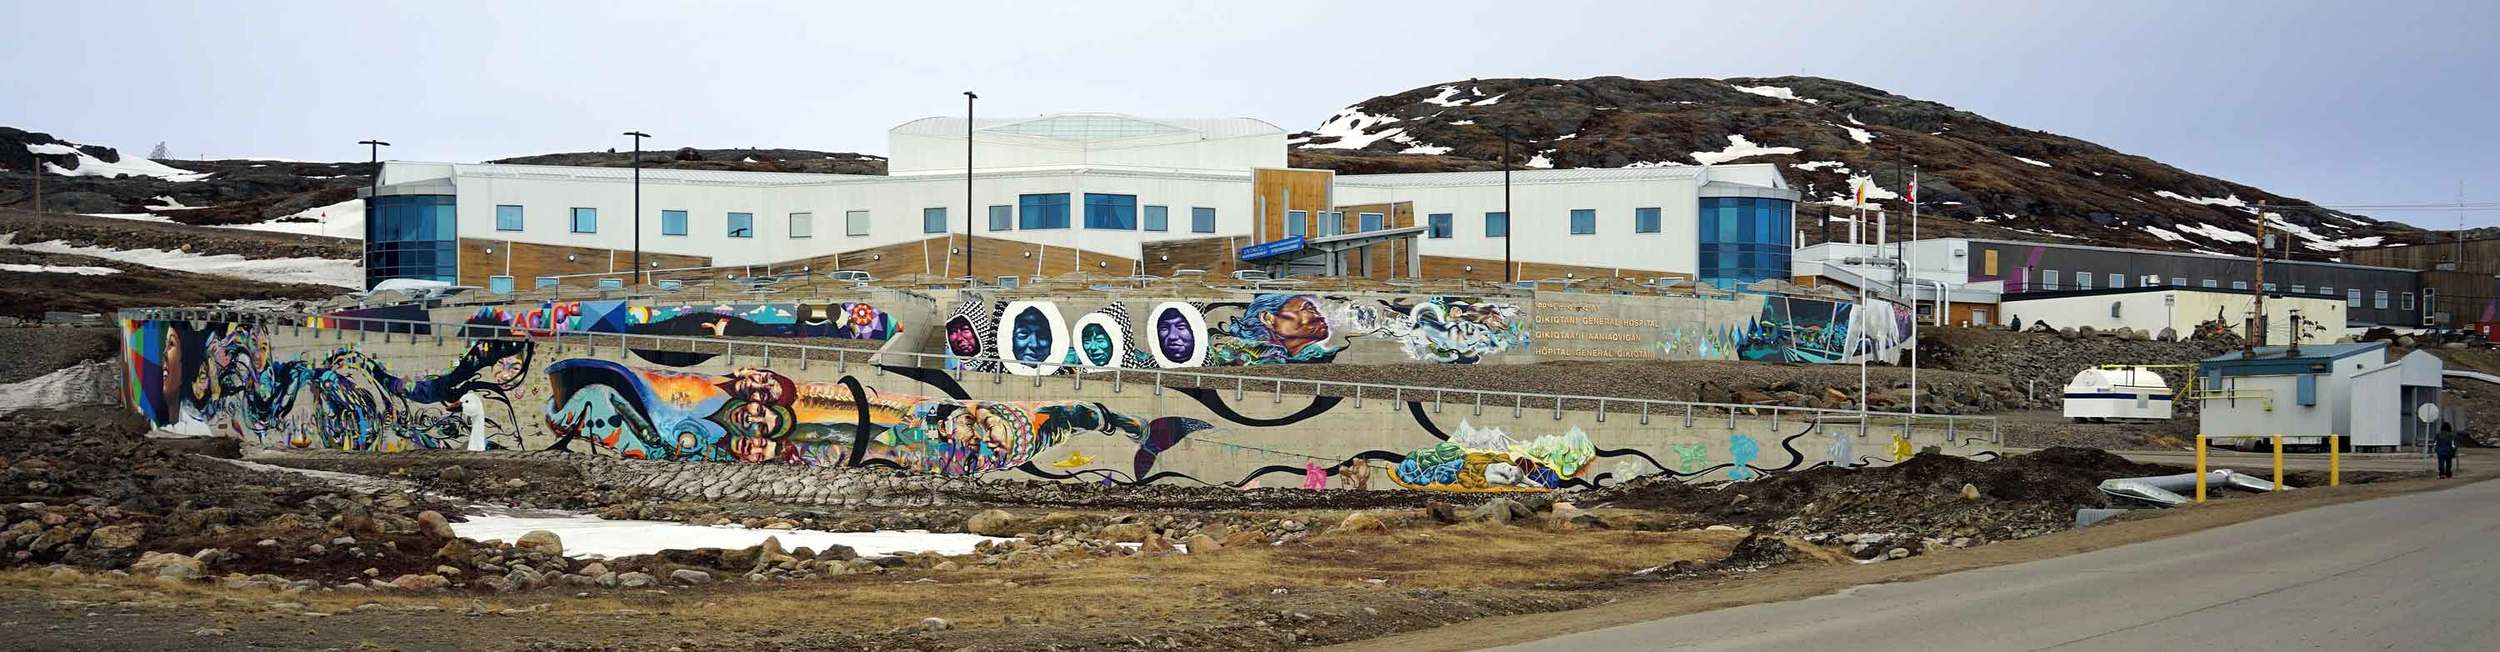 Mural at  Qikiqtani General Hospital . Iqaluit. Photo: ©Christine Montague